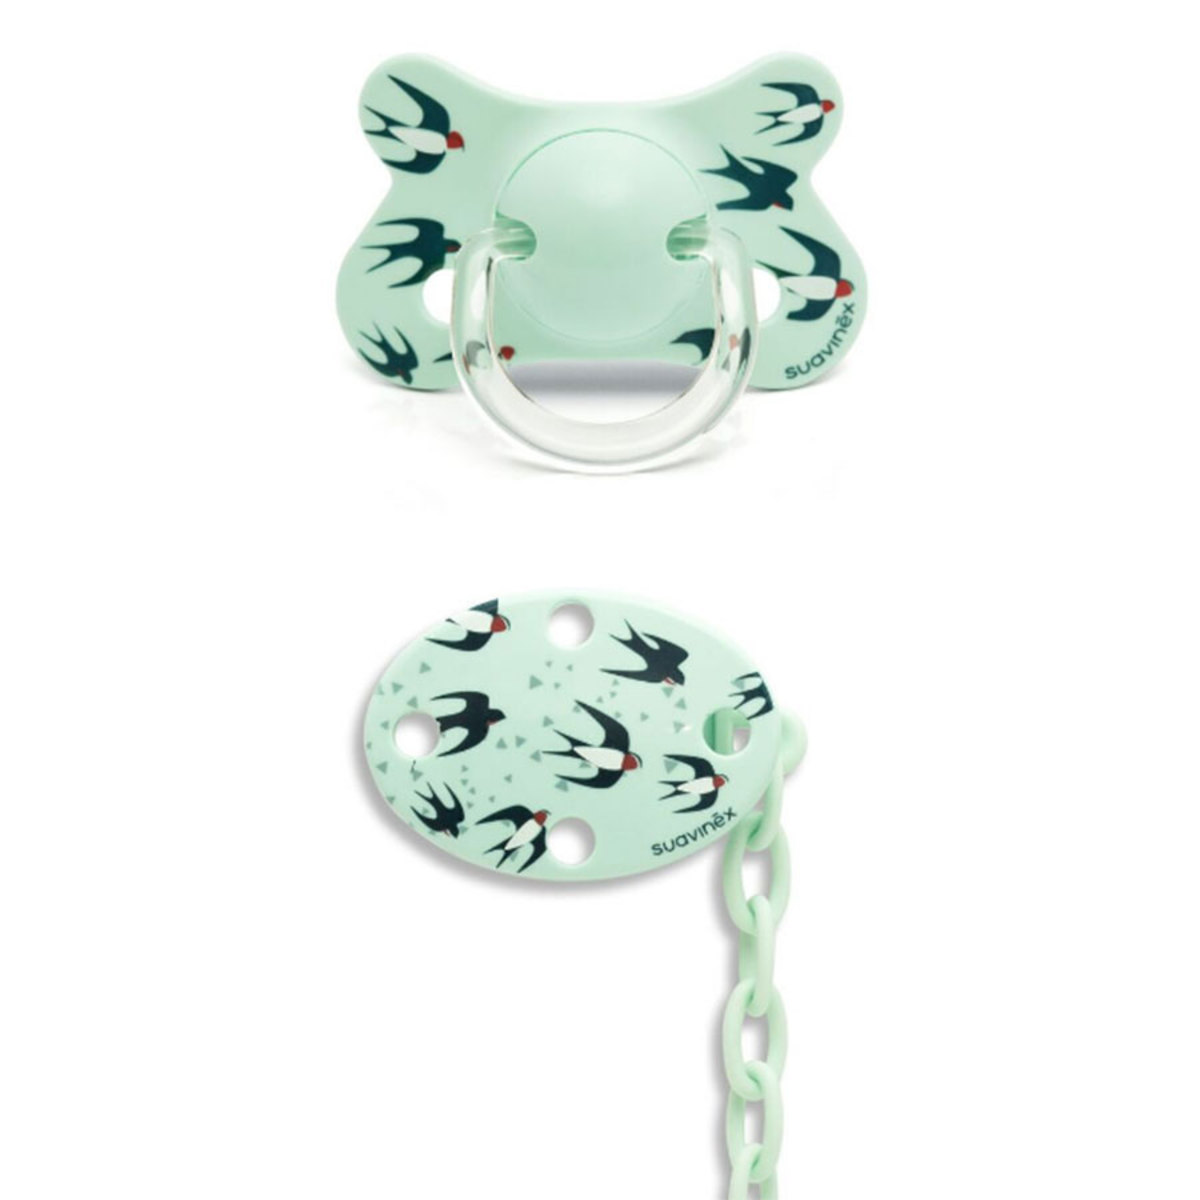 Sucette Sucette Fusion Physio Silicone Hirondelle 4/18 mois et Clip Turquoise Total Look Sucette Fusion Physio Silicone Hirondelle 4/18 mois et Clip Turquoise Total Look